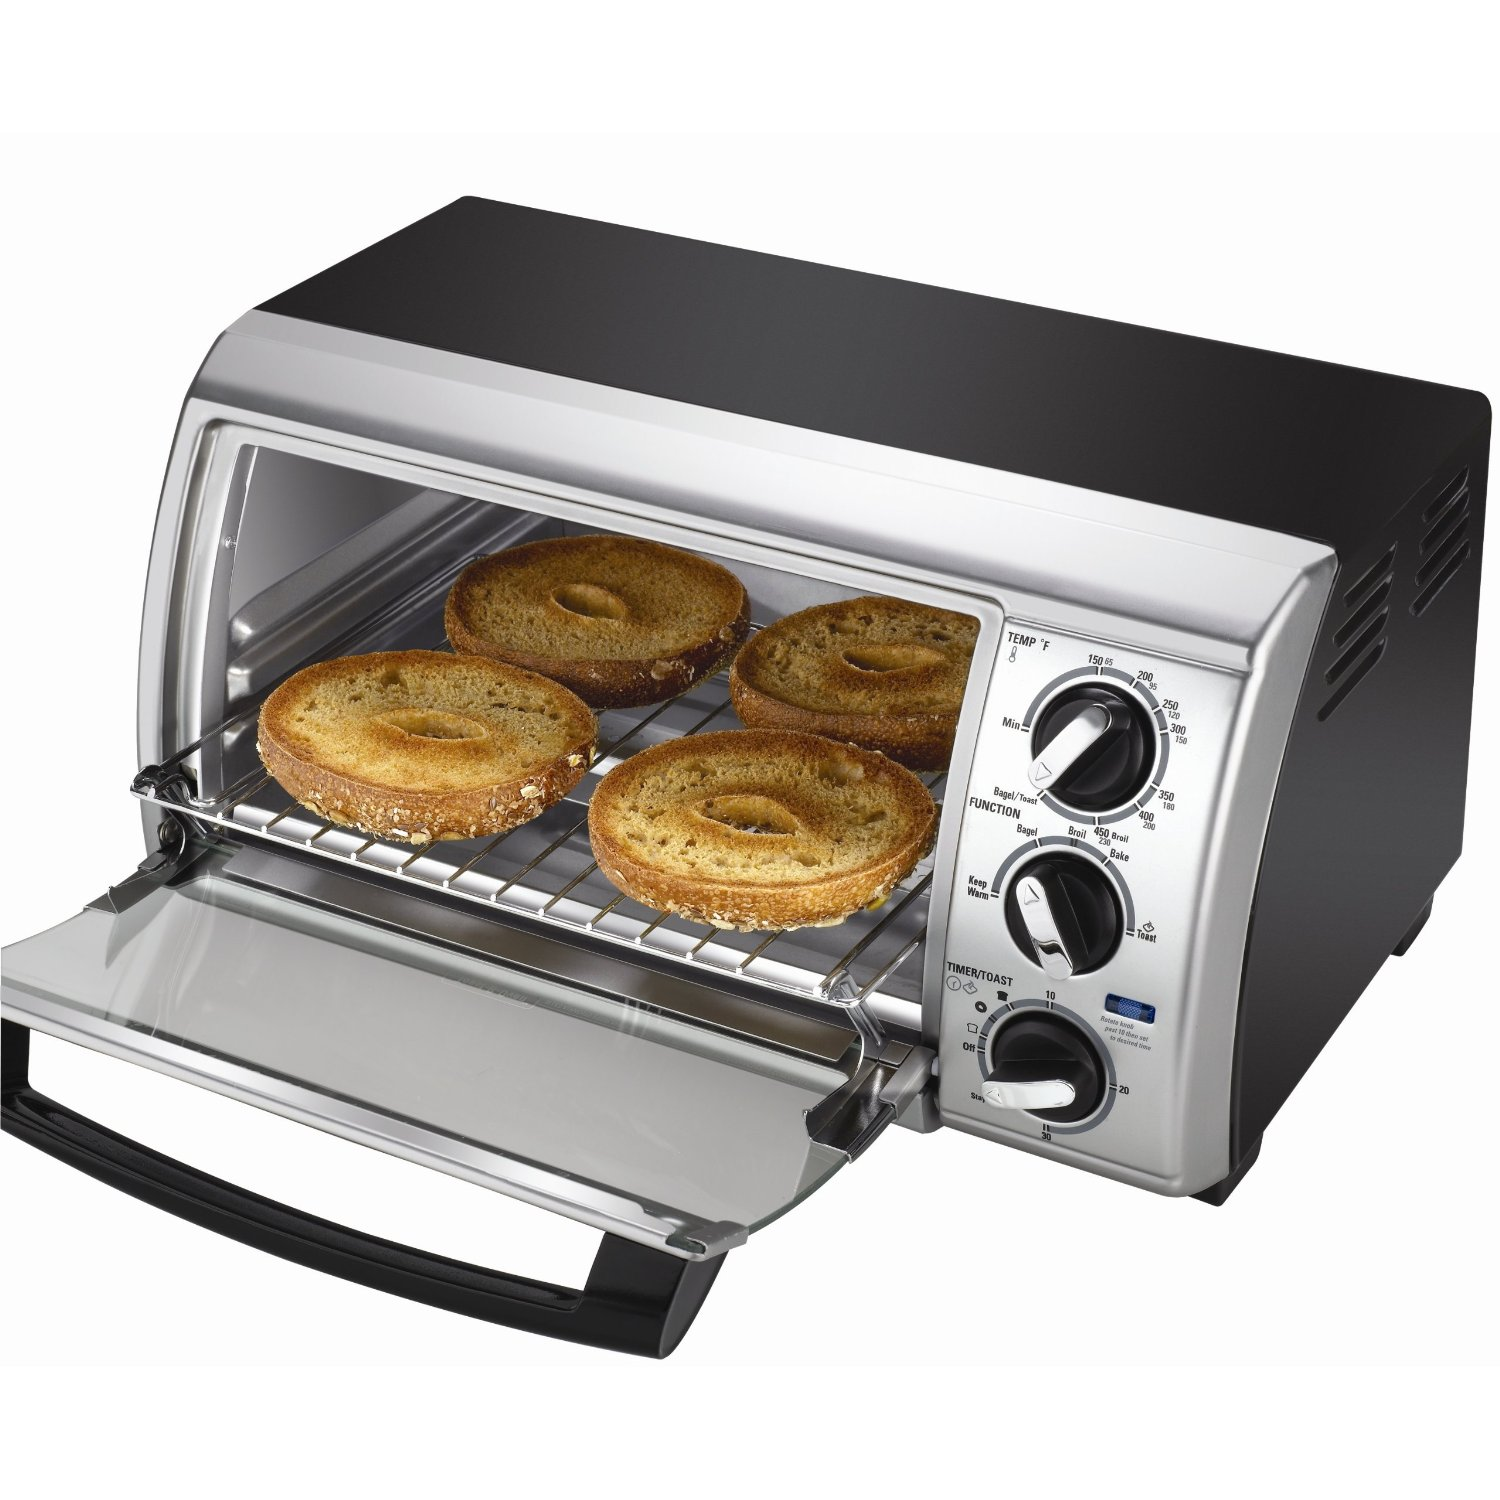 It Is Flexible That You Can Bake Broil Toast Or Reheat May Even Use To Keep Food Warm Until Time Serve Plenty Of People Prefer A Toaster Oven